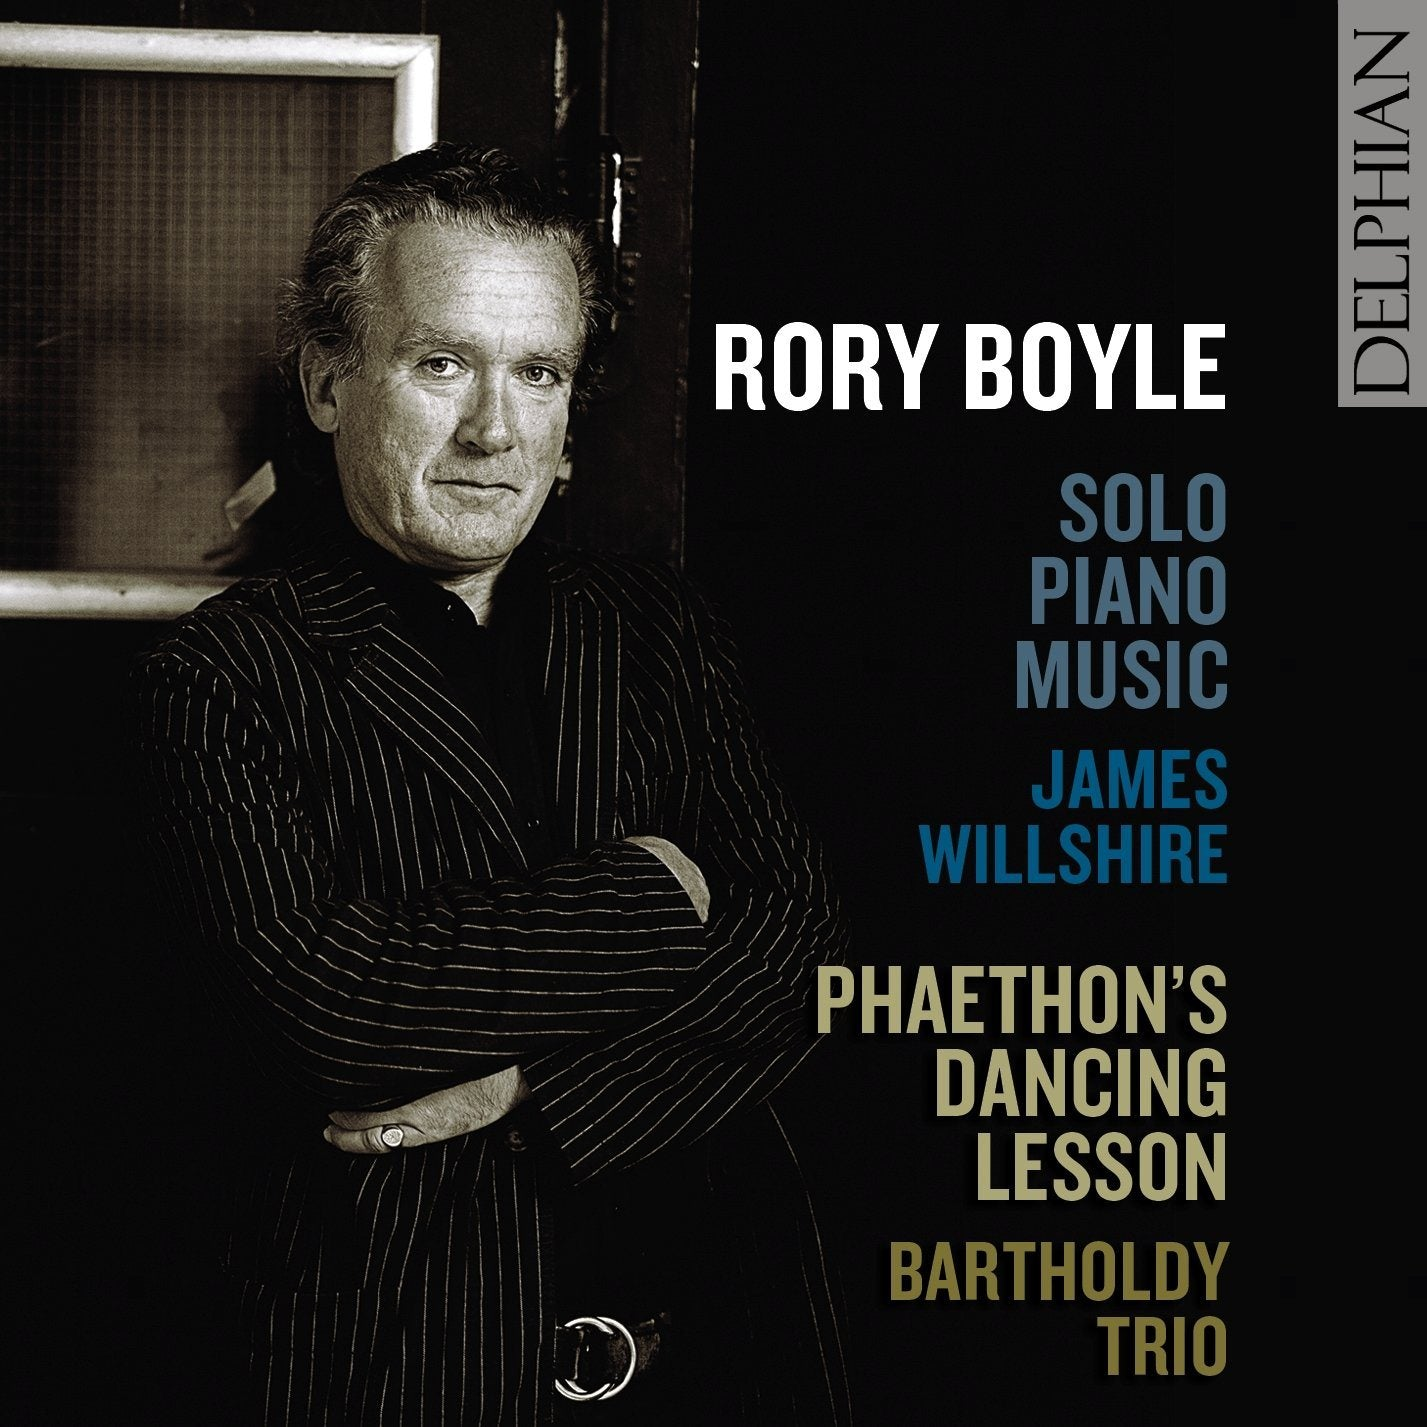 Rory Boyle: Music for solo piano; Phaethon's Dancing Lesson CD Delphian Records